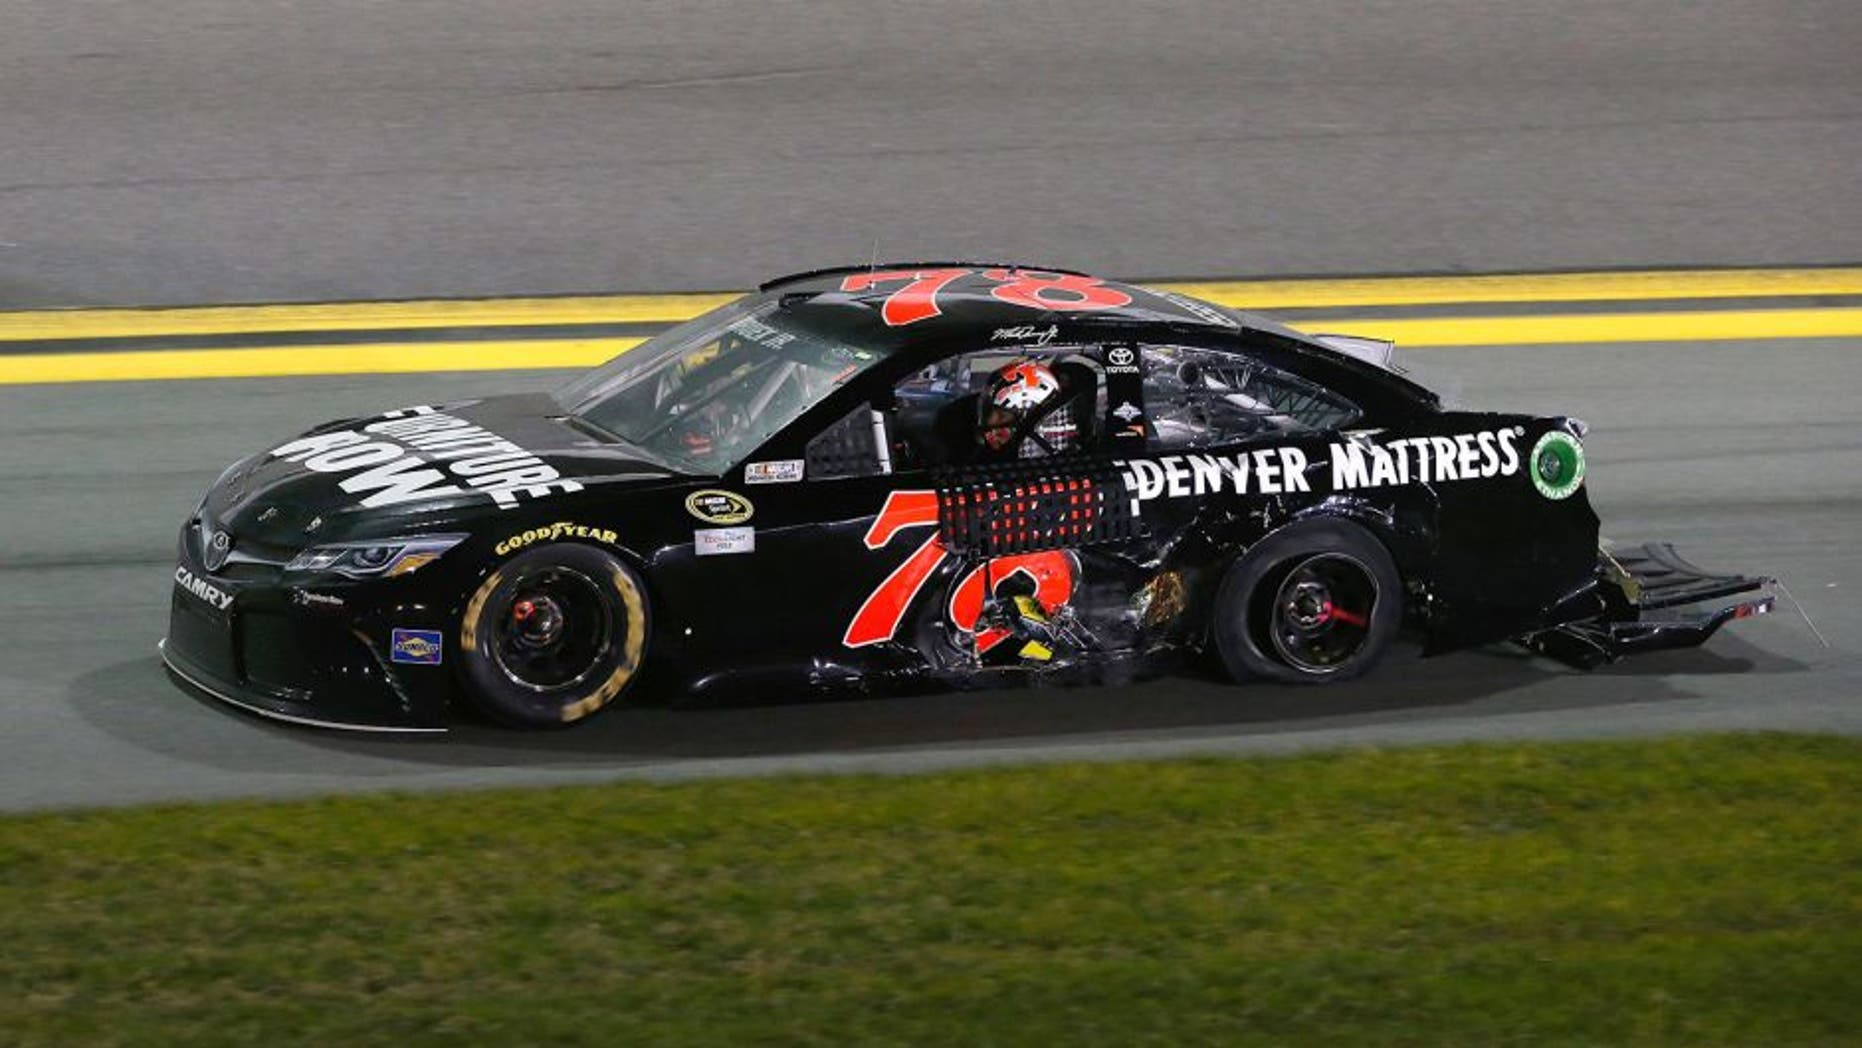 DAYTONA BEACH, FL - FEBRUARY 13: Martin Truex Jr., driver of the #78 Furniture Row/Denver Mattress Toyota, drives his car after being involved in an on-track incident during the NASCAR Sprint Cup Series Sprint Unlimited at Daytona International Speedway on February 13, 2016 in Daytona Beach, Florida. (Photo by Brian Lawdermilk/Getty Images)